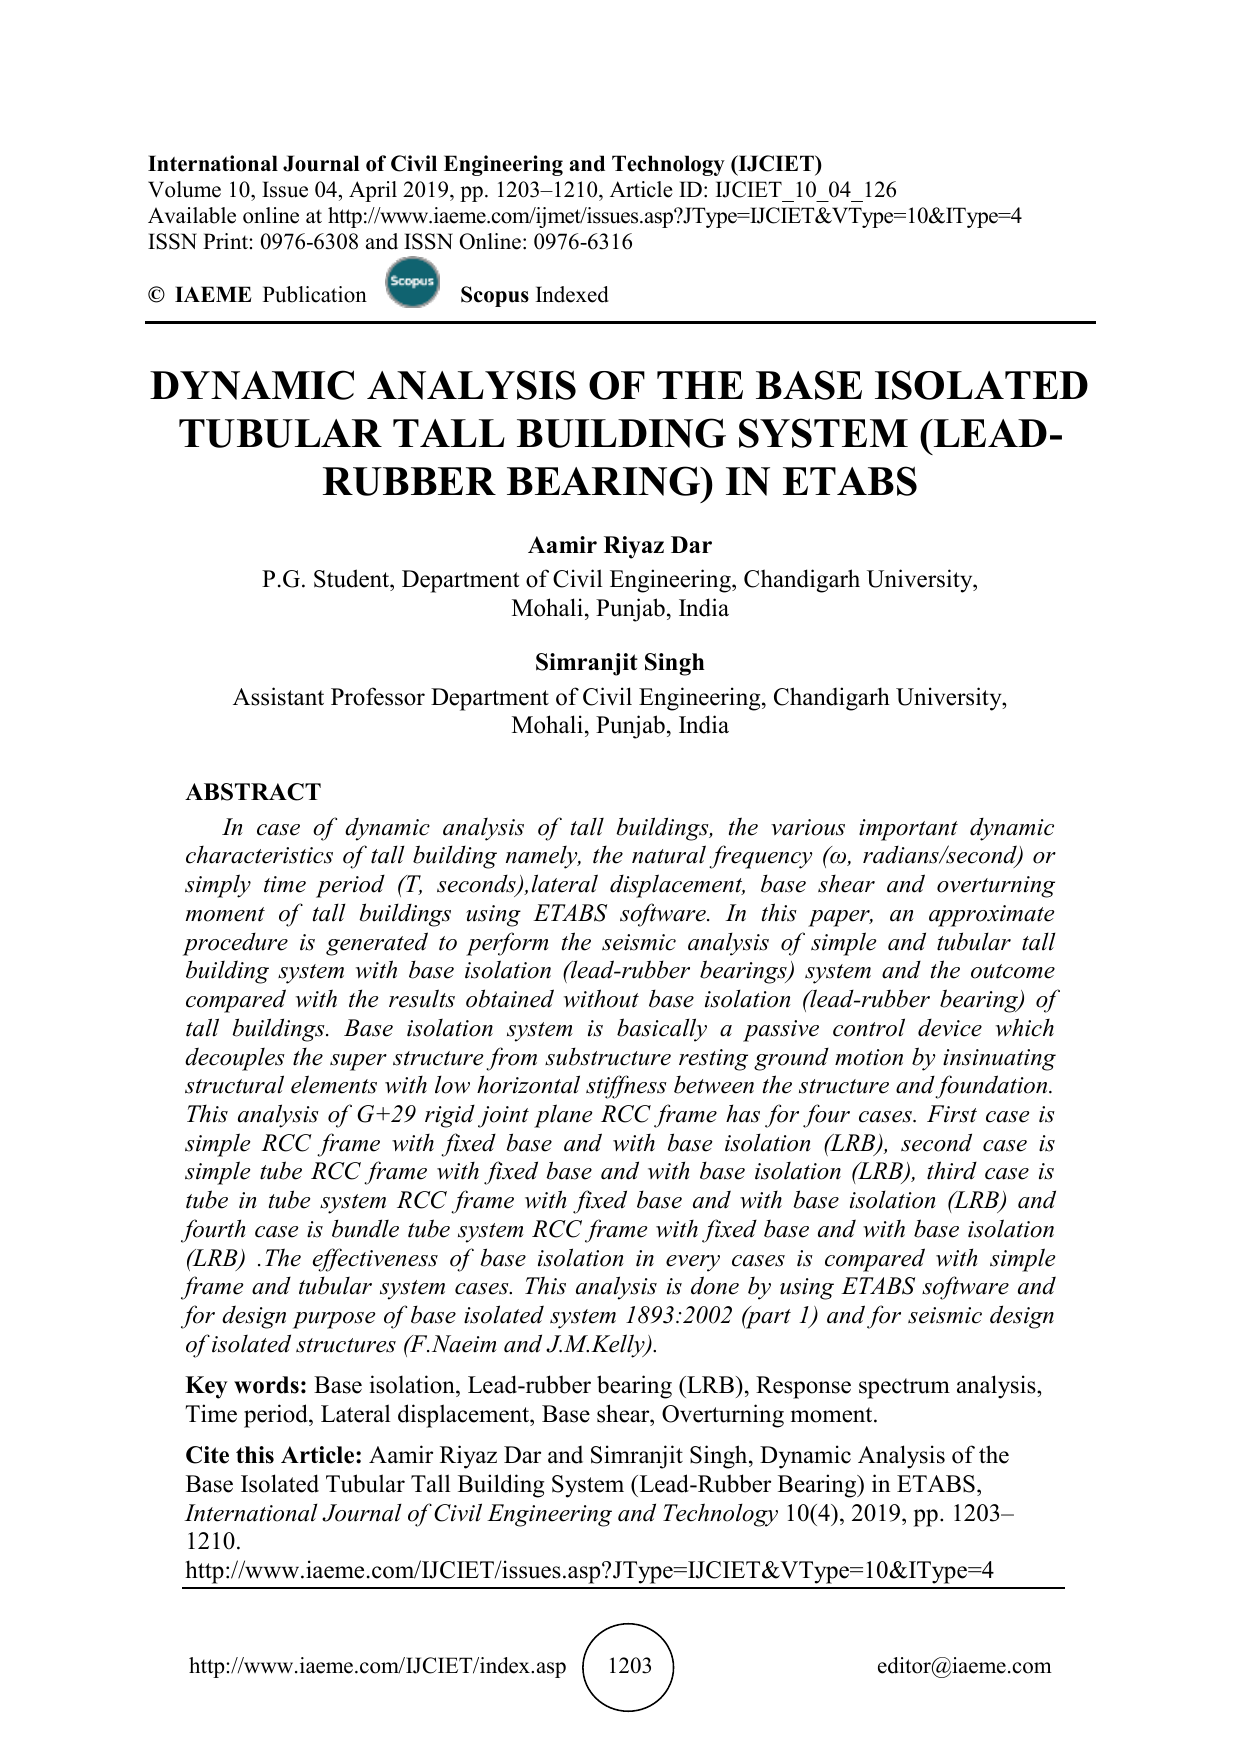 DYNAMIC ANALYSIS OF THE BASE ISOLATED TUBULAR TALL BUILDING